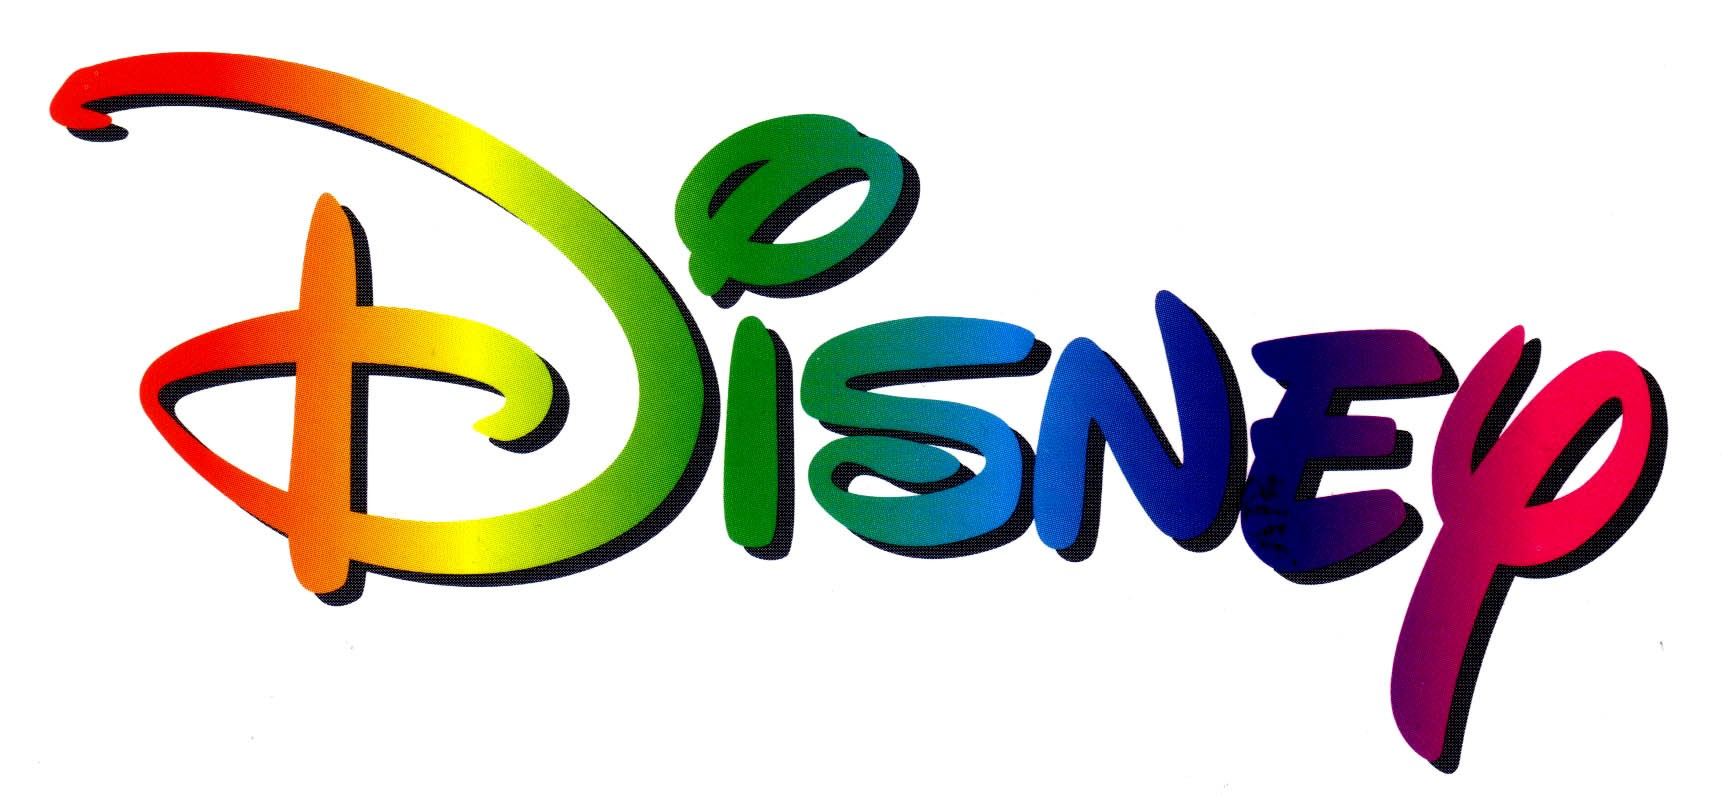 Disney to end Netflix distribution agreement in 2019. See Stockwinners.com Market Radar for details